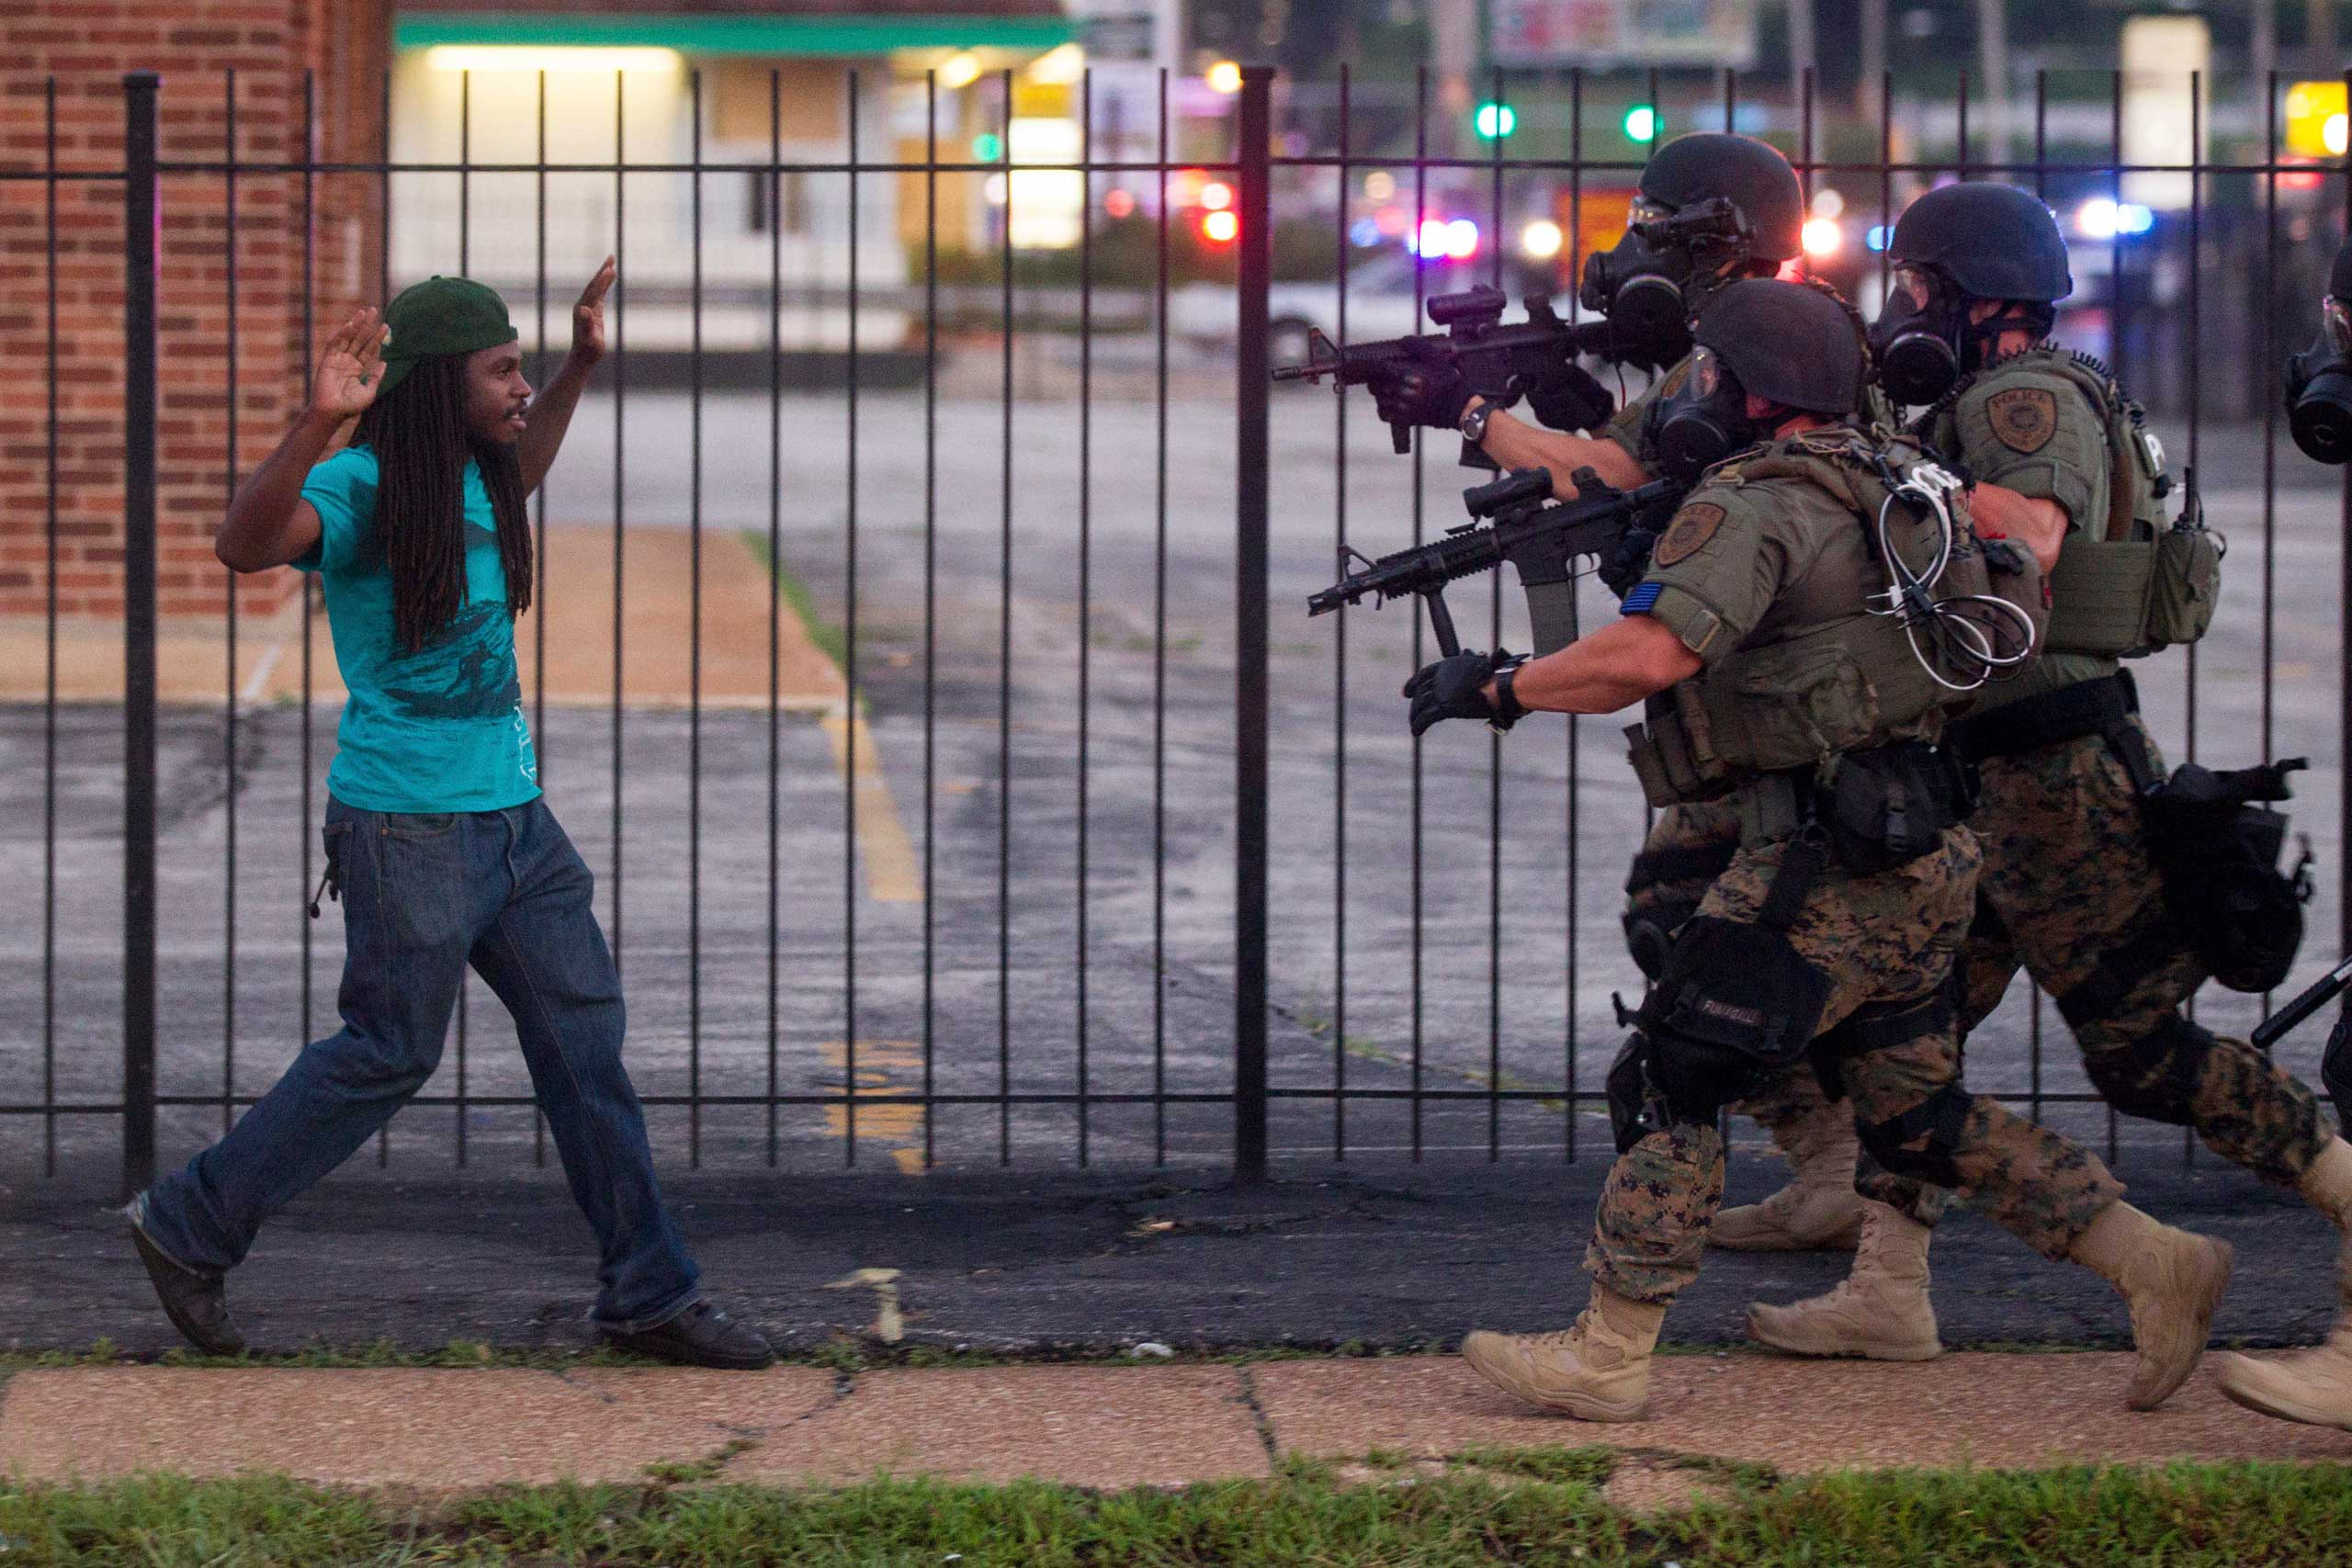 Heavily-armed police advance on a protester on Aug. 11, 2014. Law enforcement's tactical response, which included military-grade weapons, tanks and SWAT teams, touched off a debate over the militarization of local police forces.